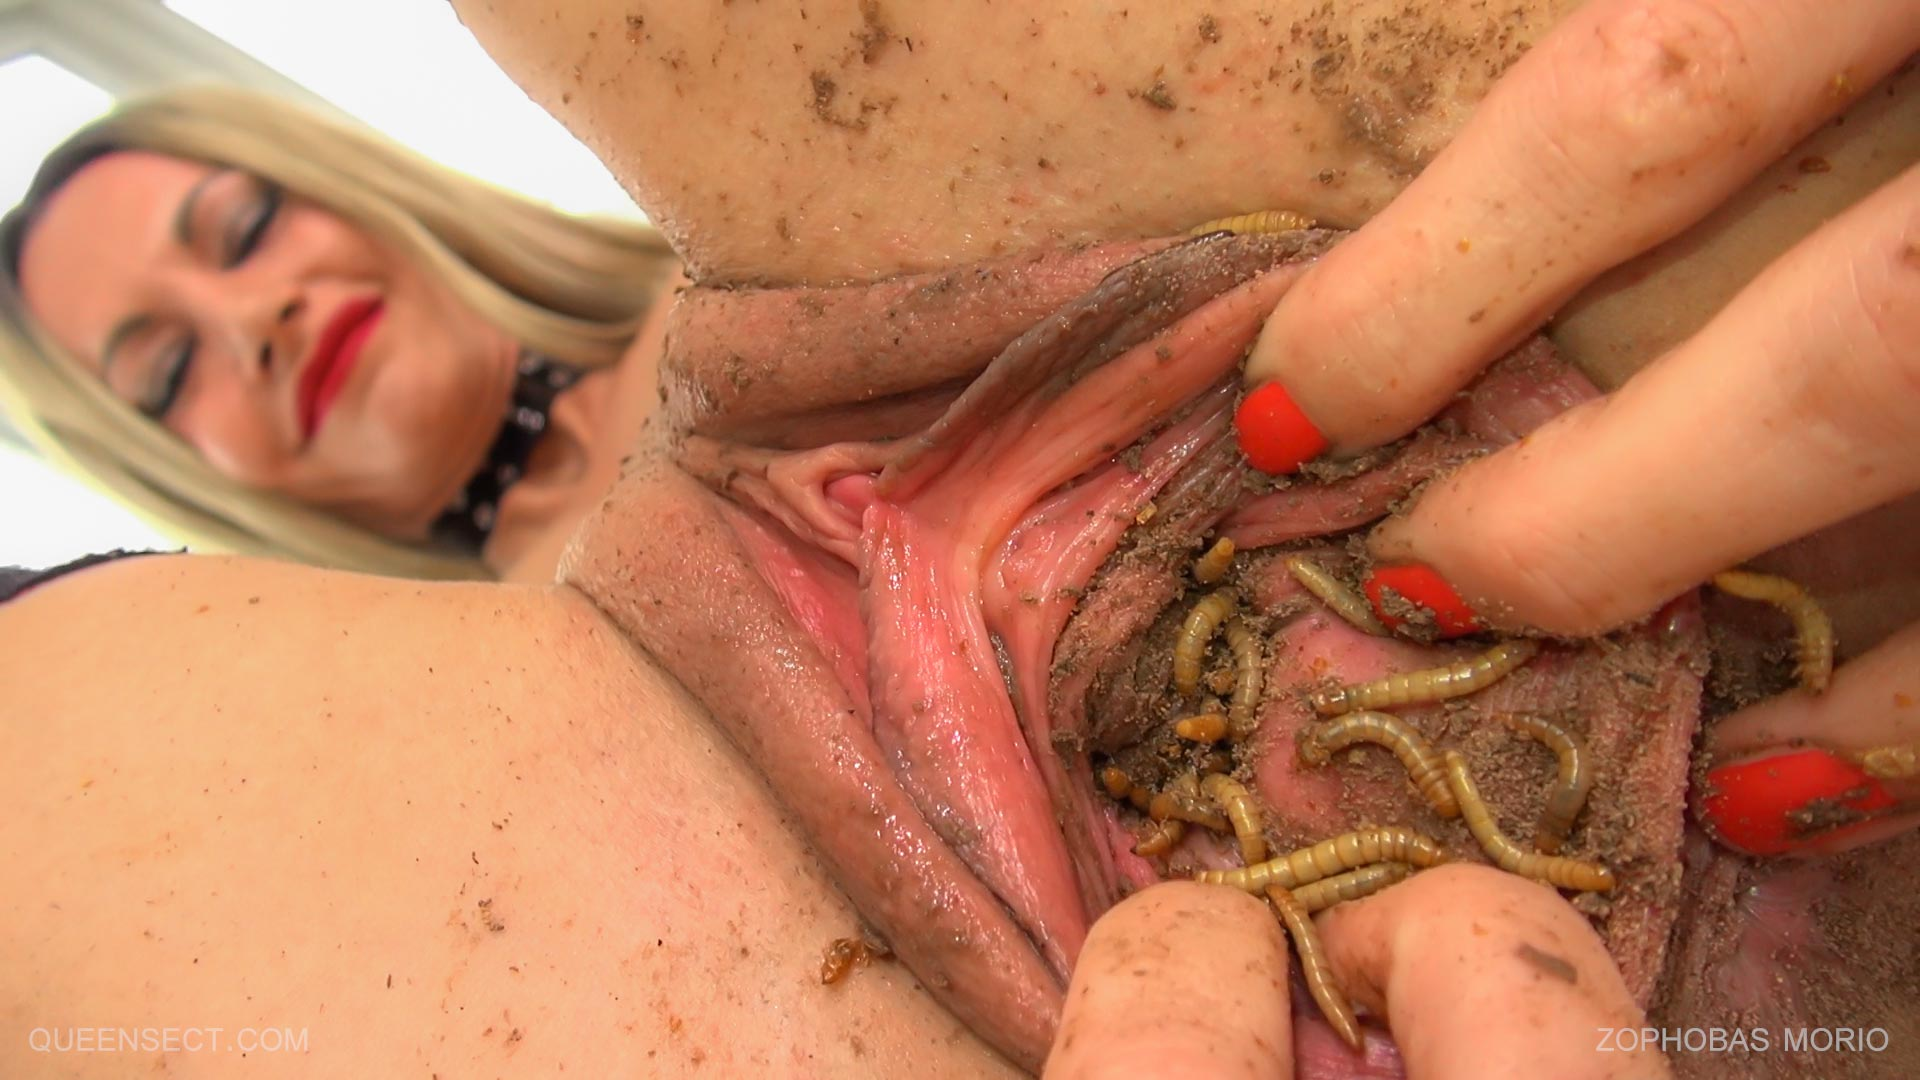 Bugs in vagina porn — photo 11